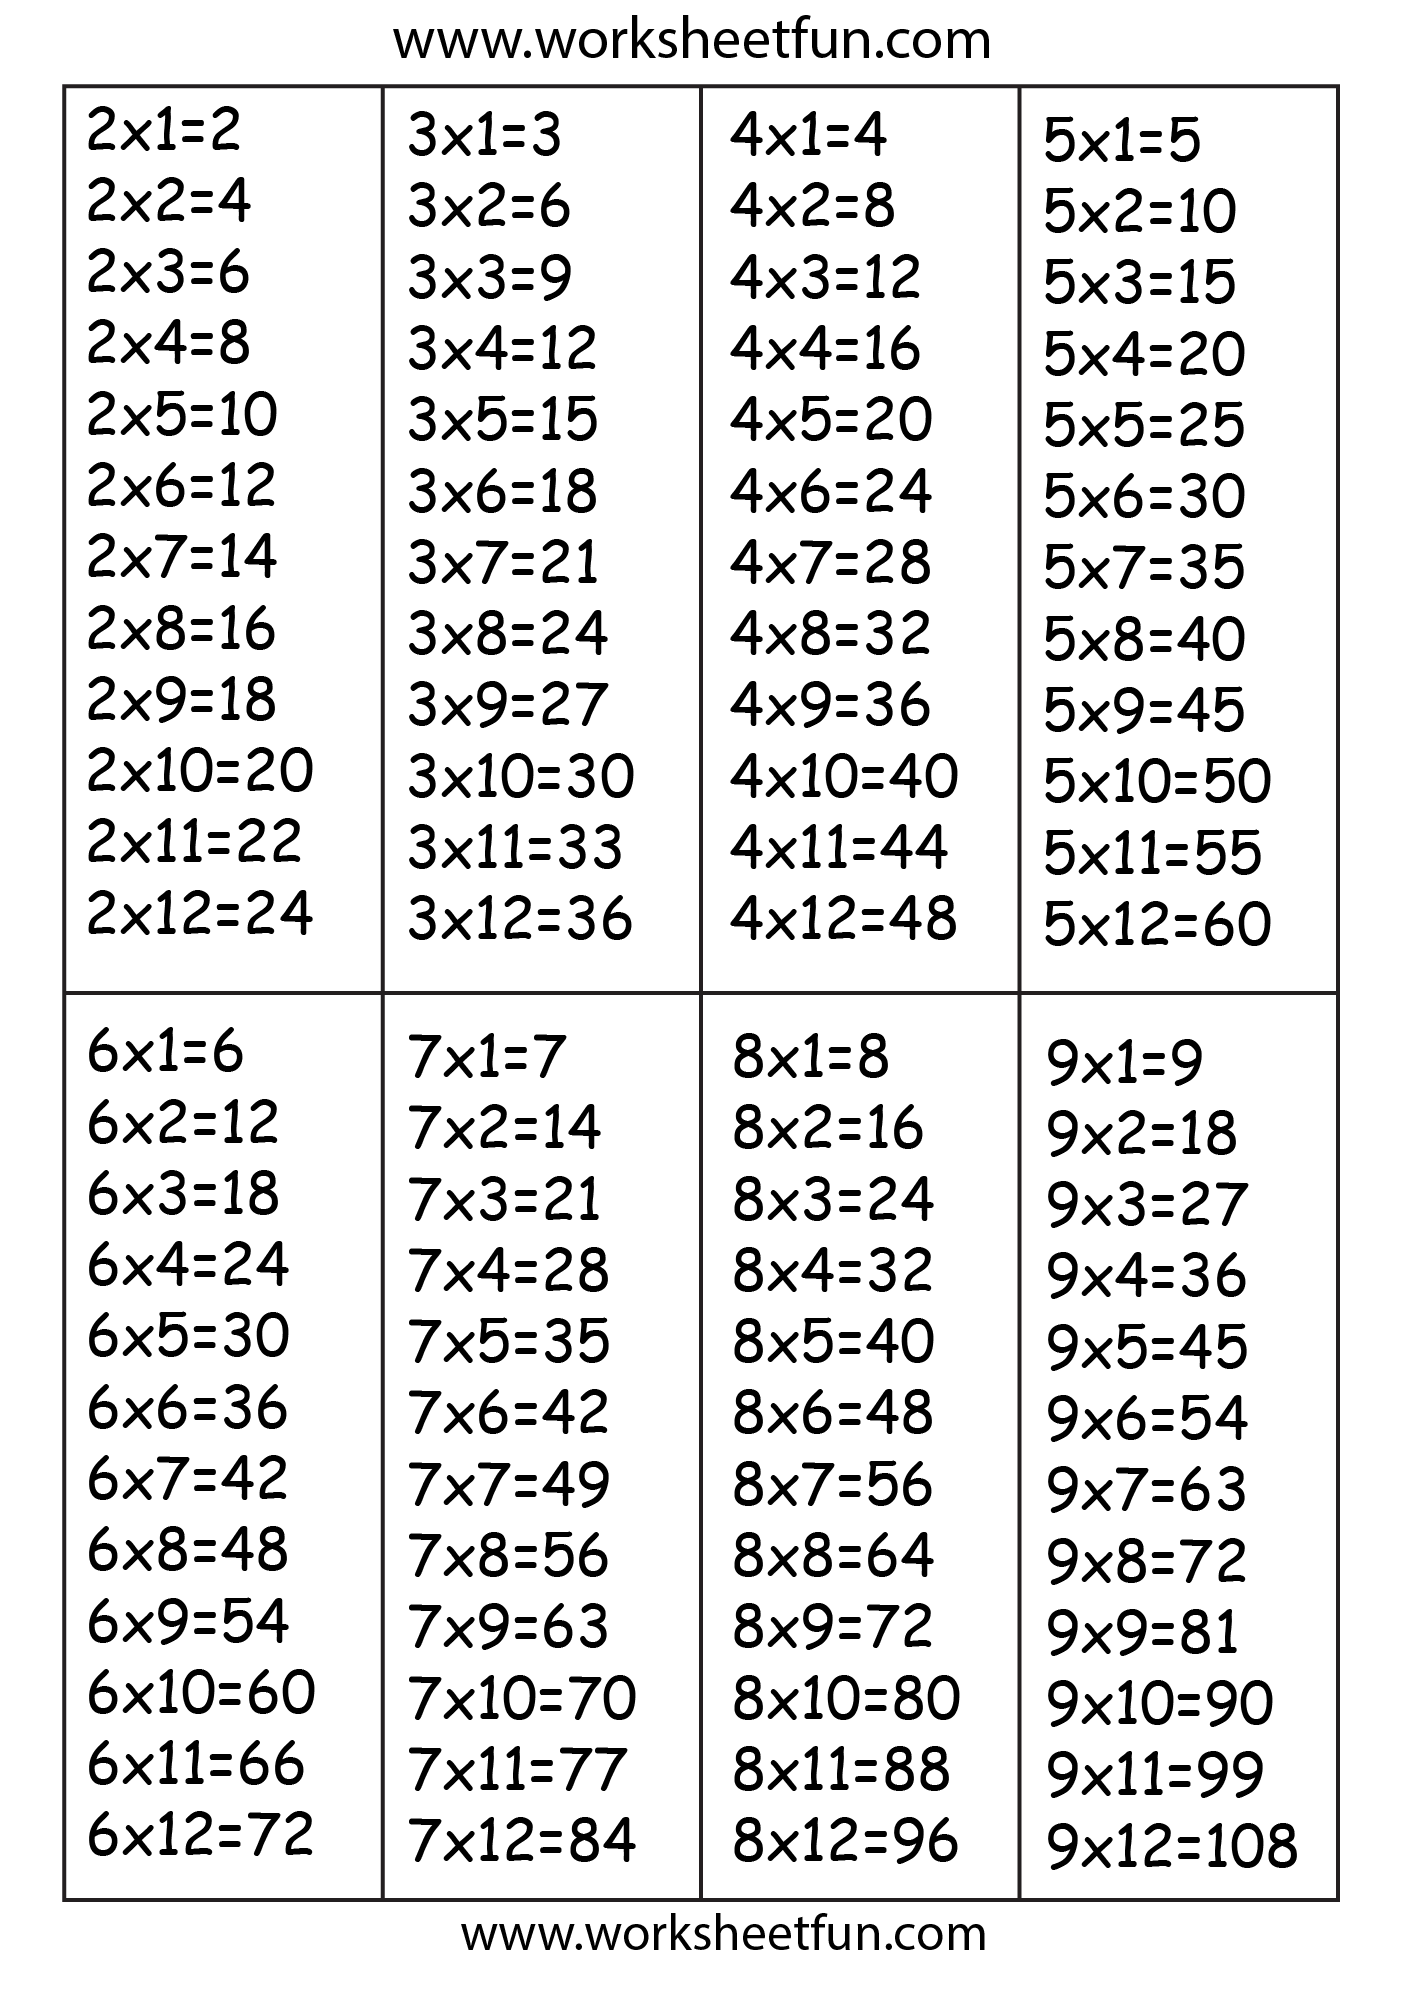 Times Tables Free Printable Worksheets Worksheetfun